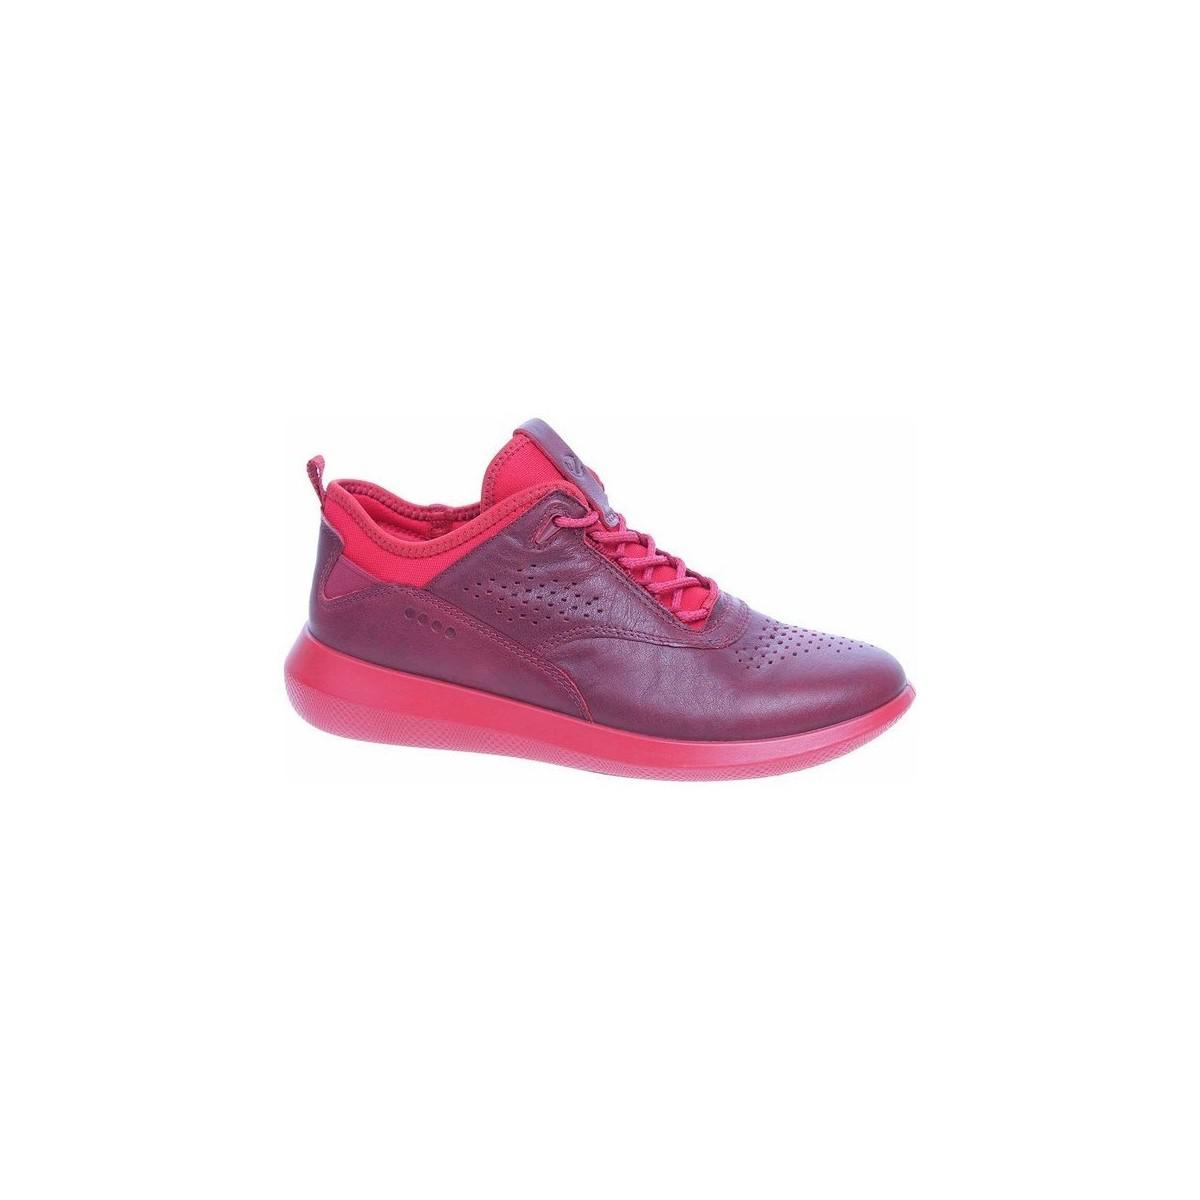 Ecco Scinapse Women's Shoes (trainers) In Multicolour in Pink